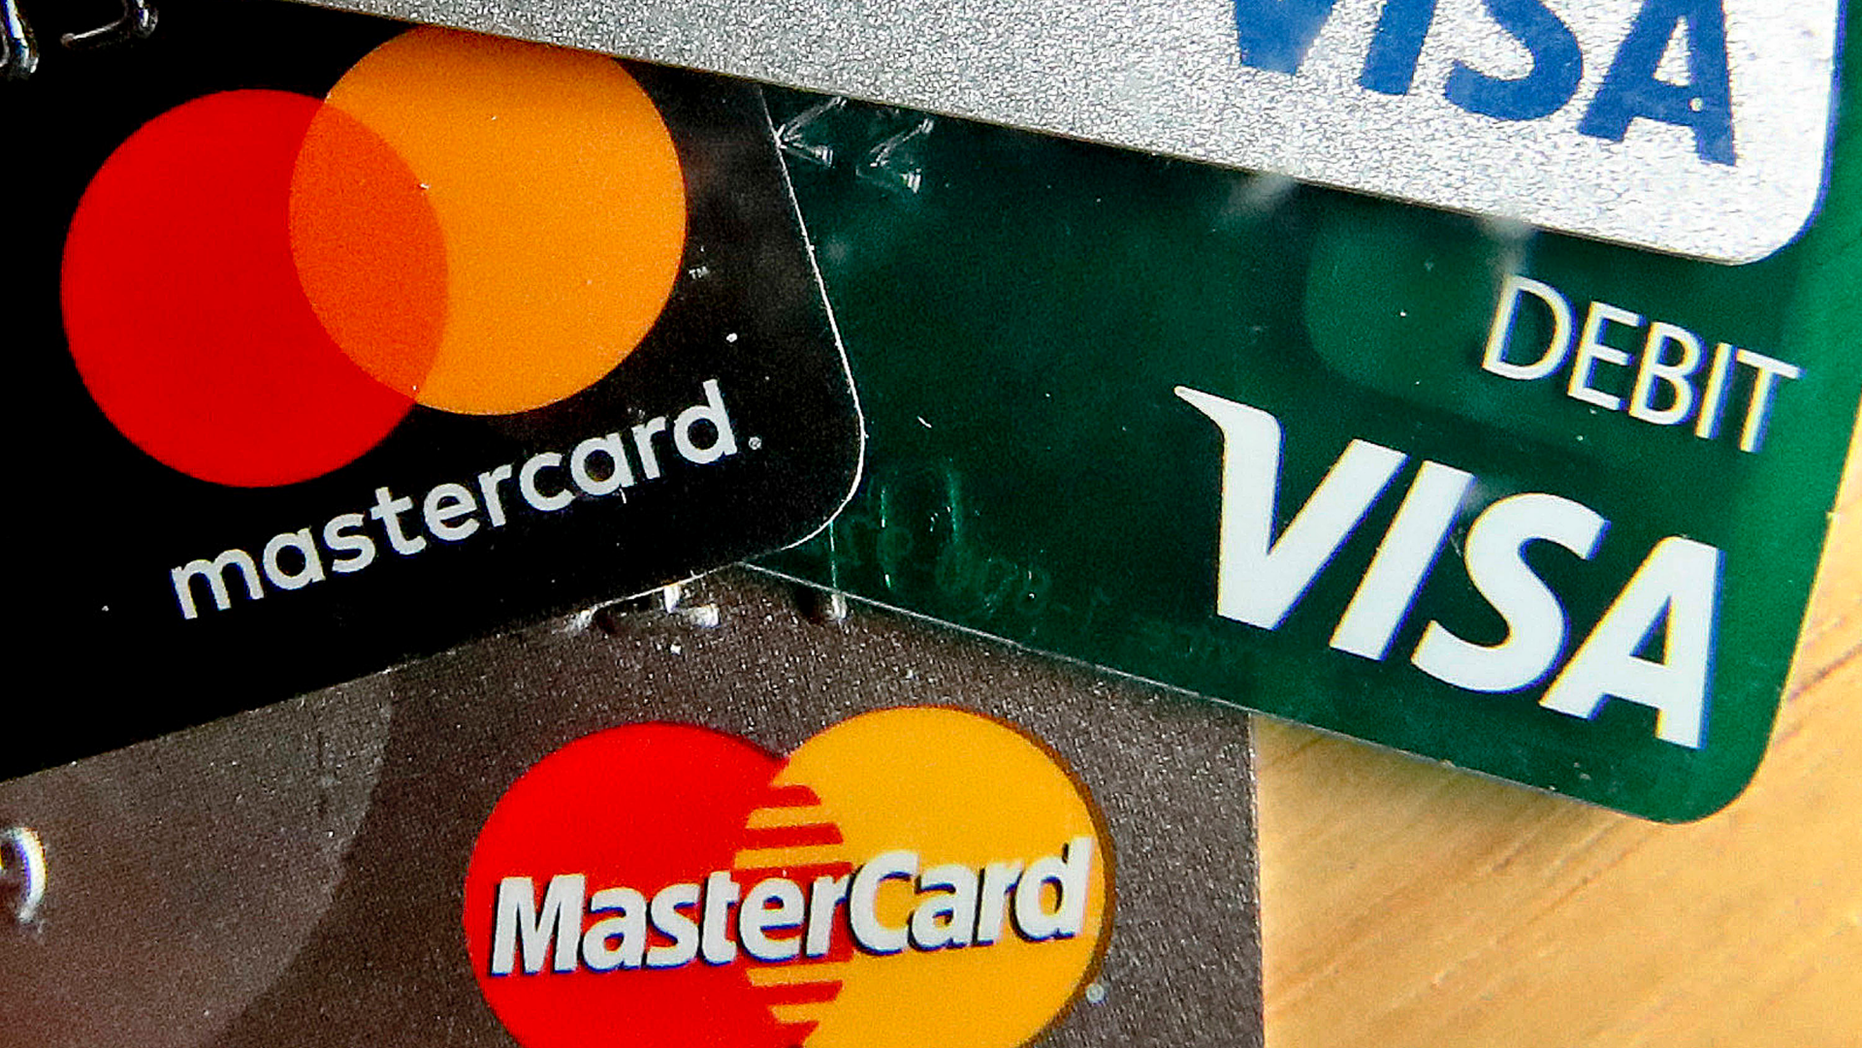 In this Feb. 20, 2019, logos for credit cards are visible on the cards in Zelienople, Pa. On Tuesday, May 7, the Federal Reserve releases its March report on consumer borrowing. (AP Photo/Keith Srakocic)